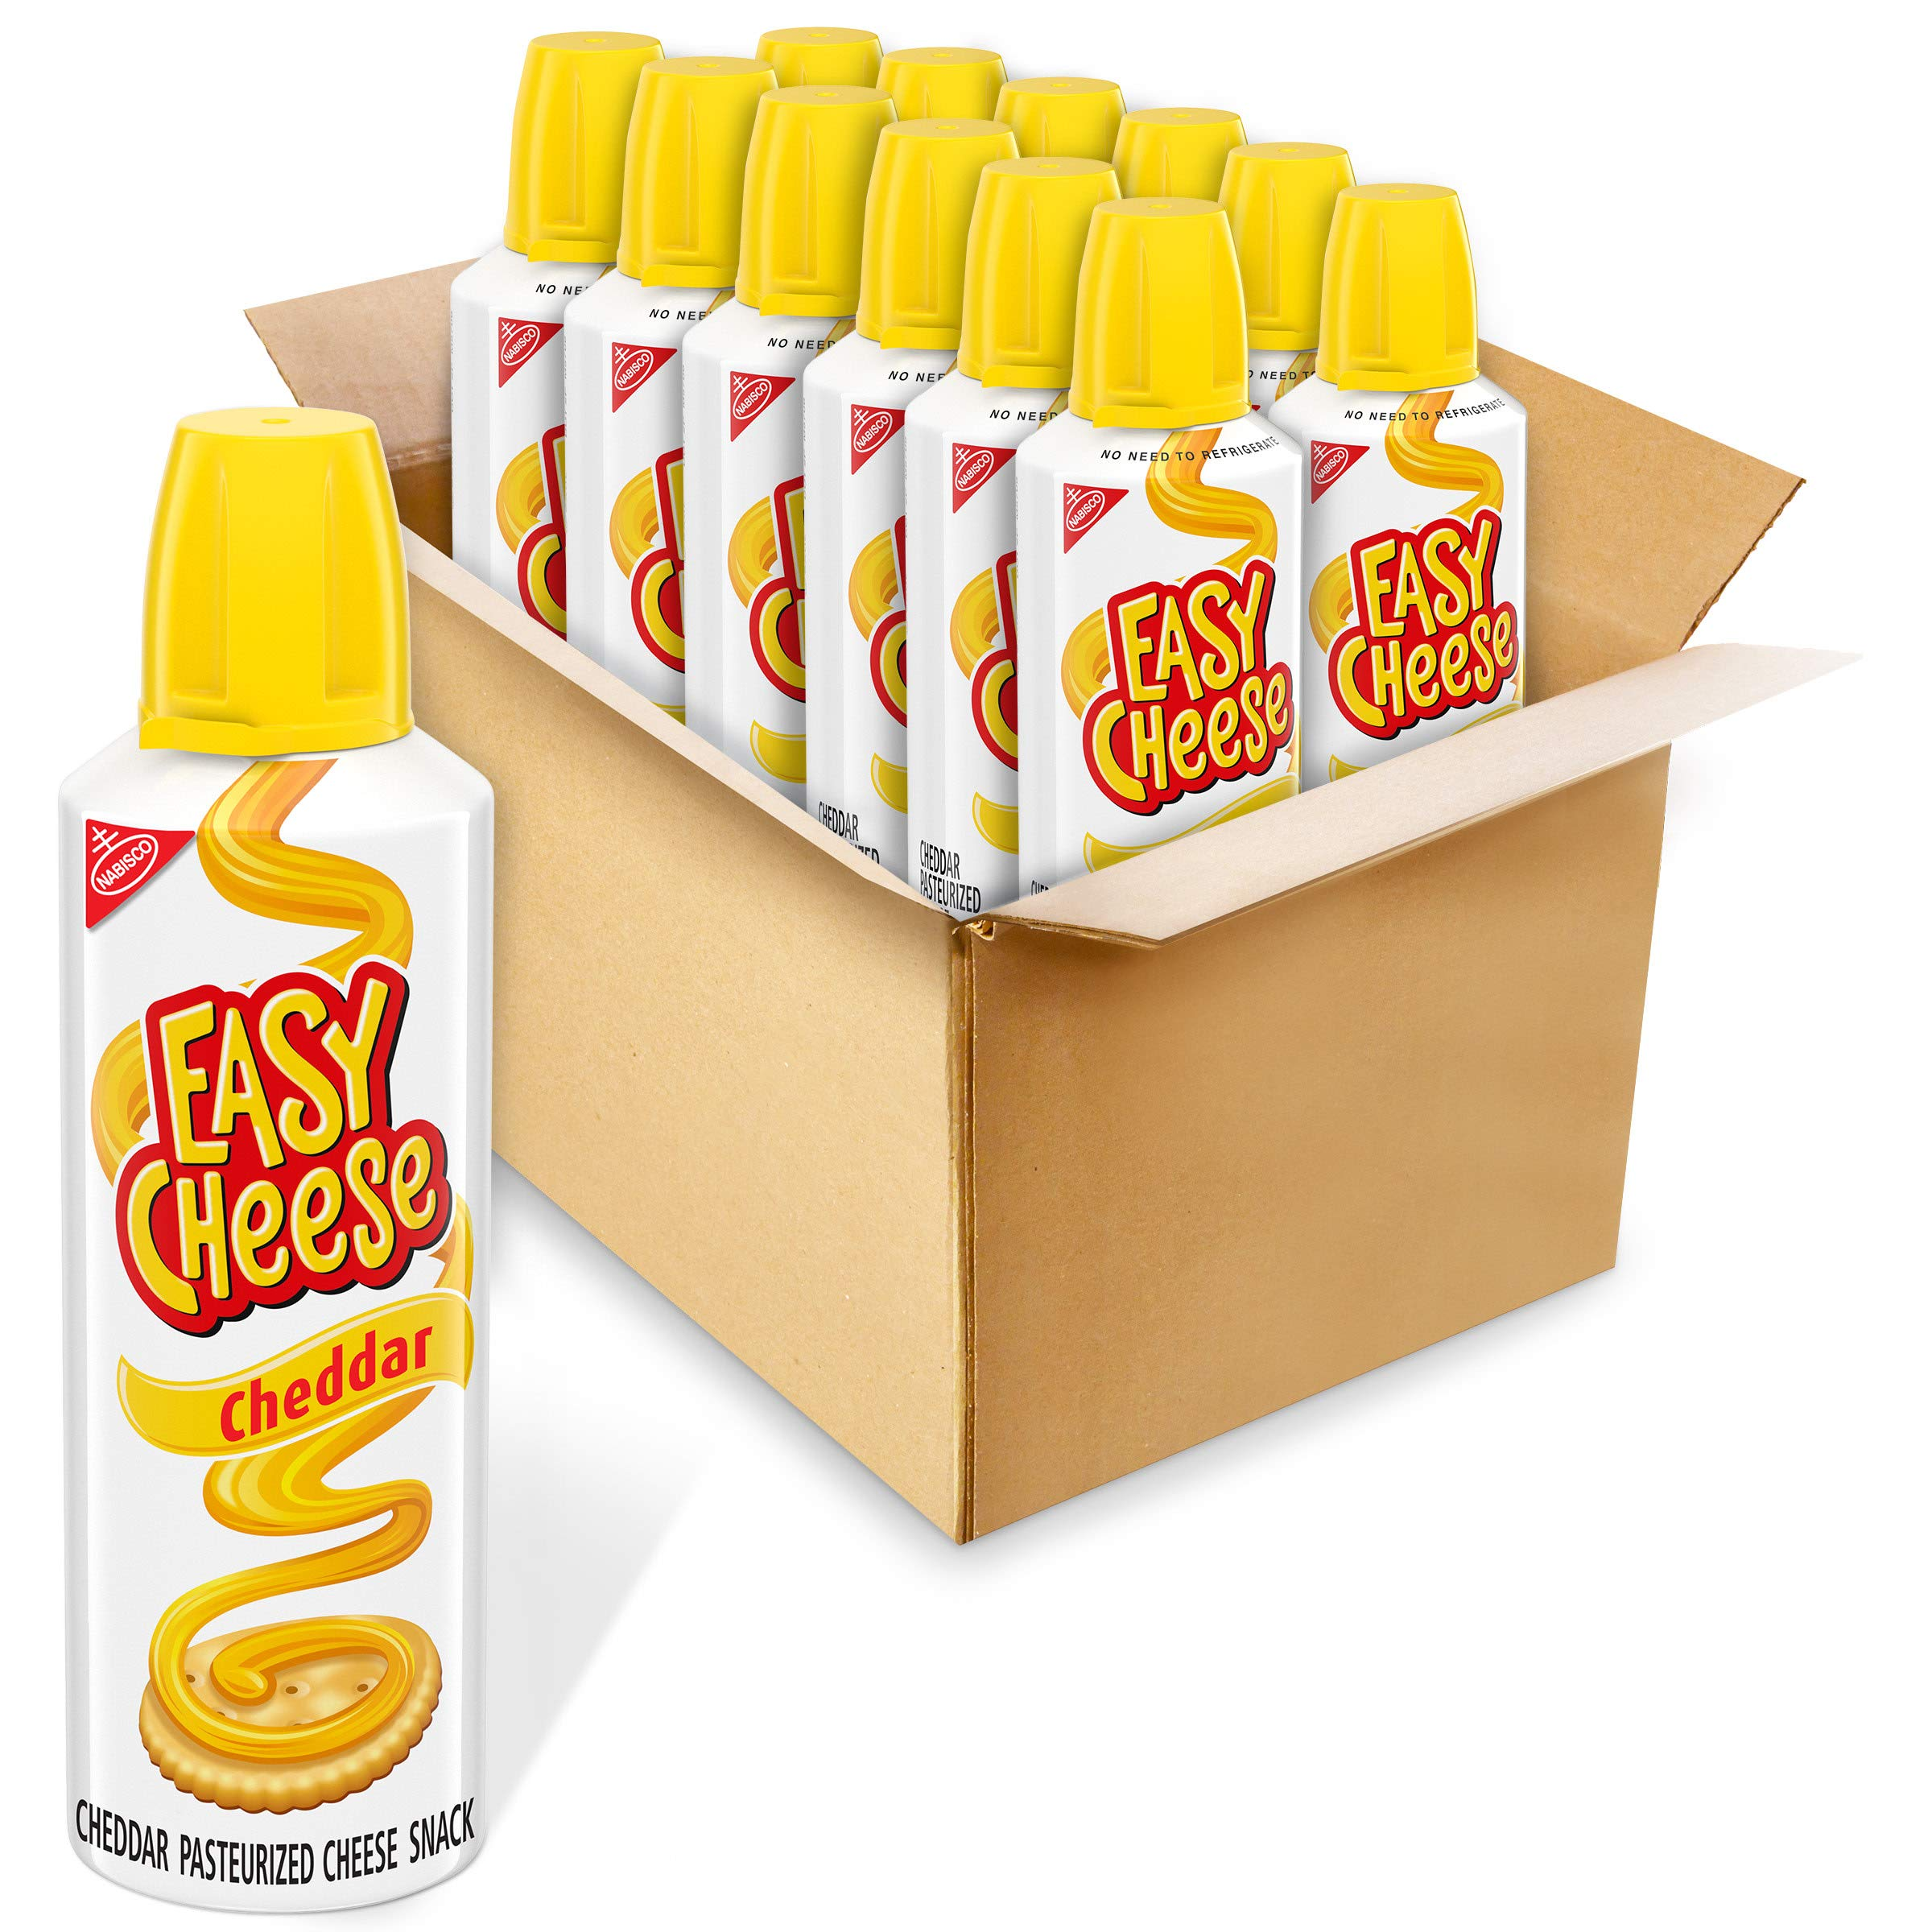 Easy Cheese Cheddar Cheese Snack, 12 - 8 oz Cans